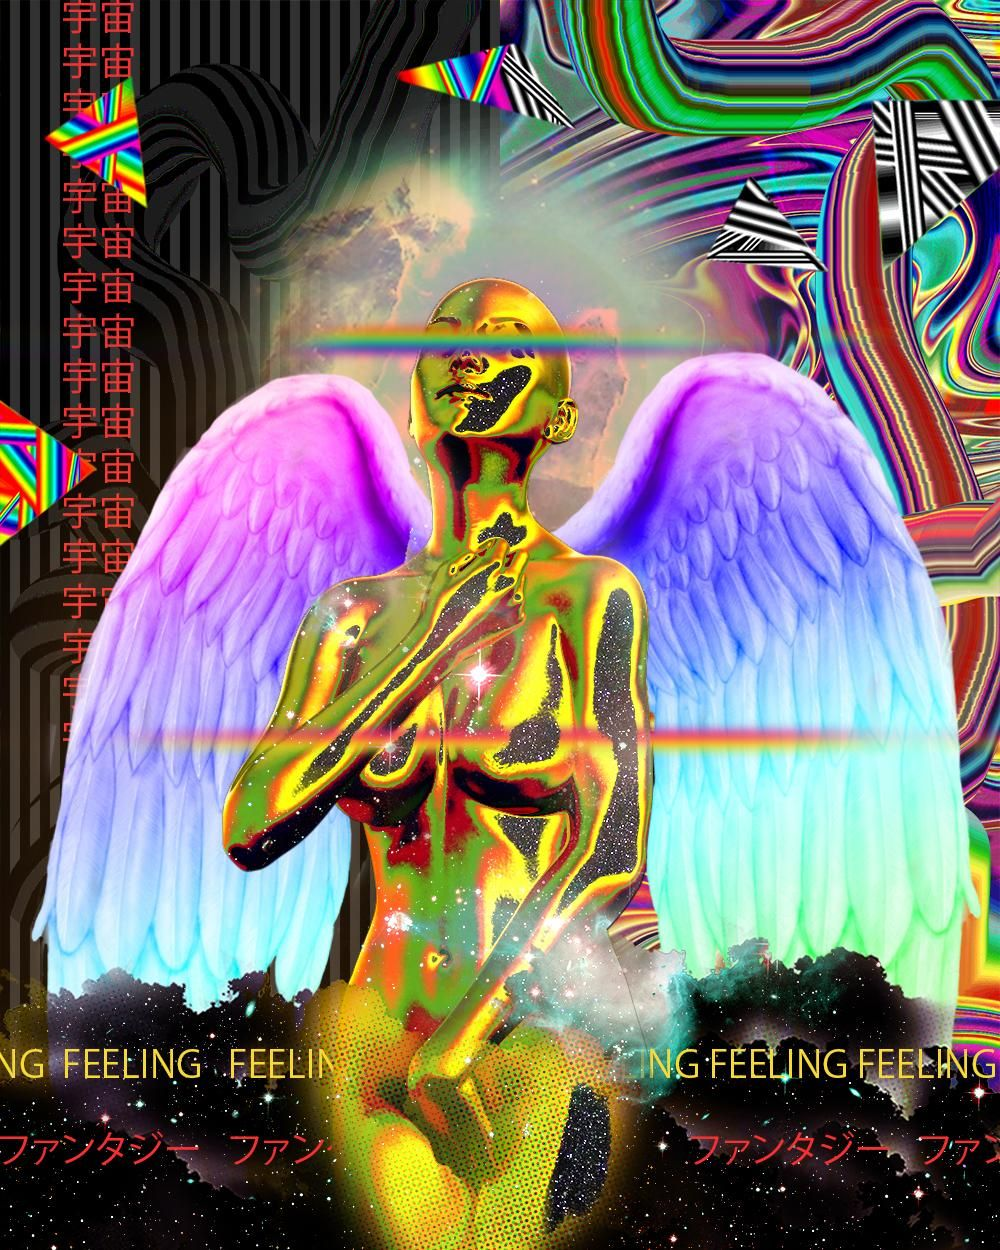 Feeling - image 1 - student project